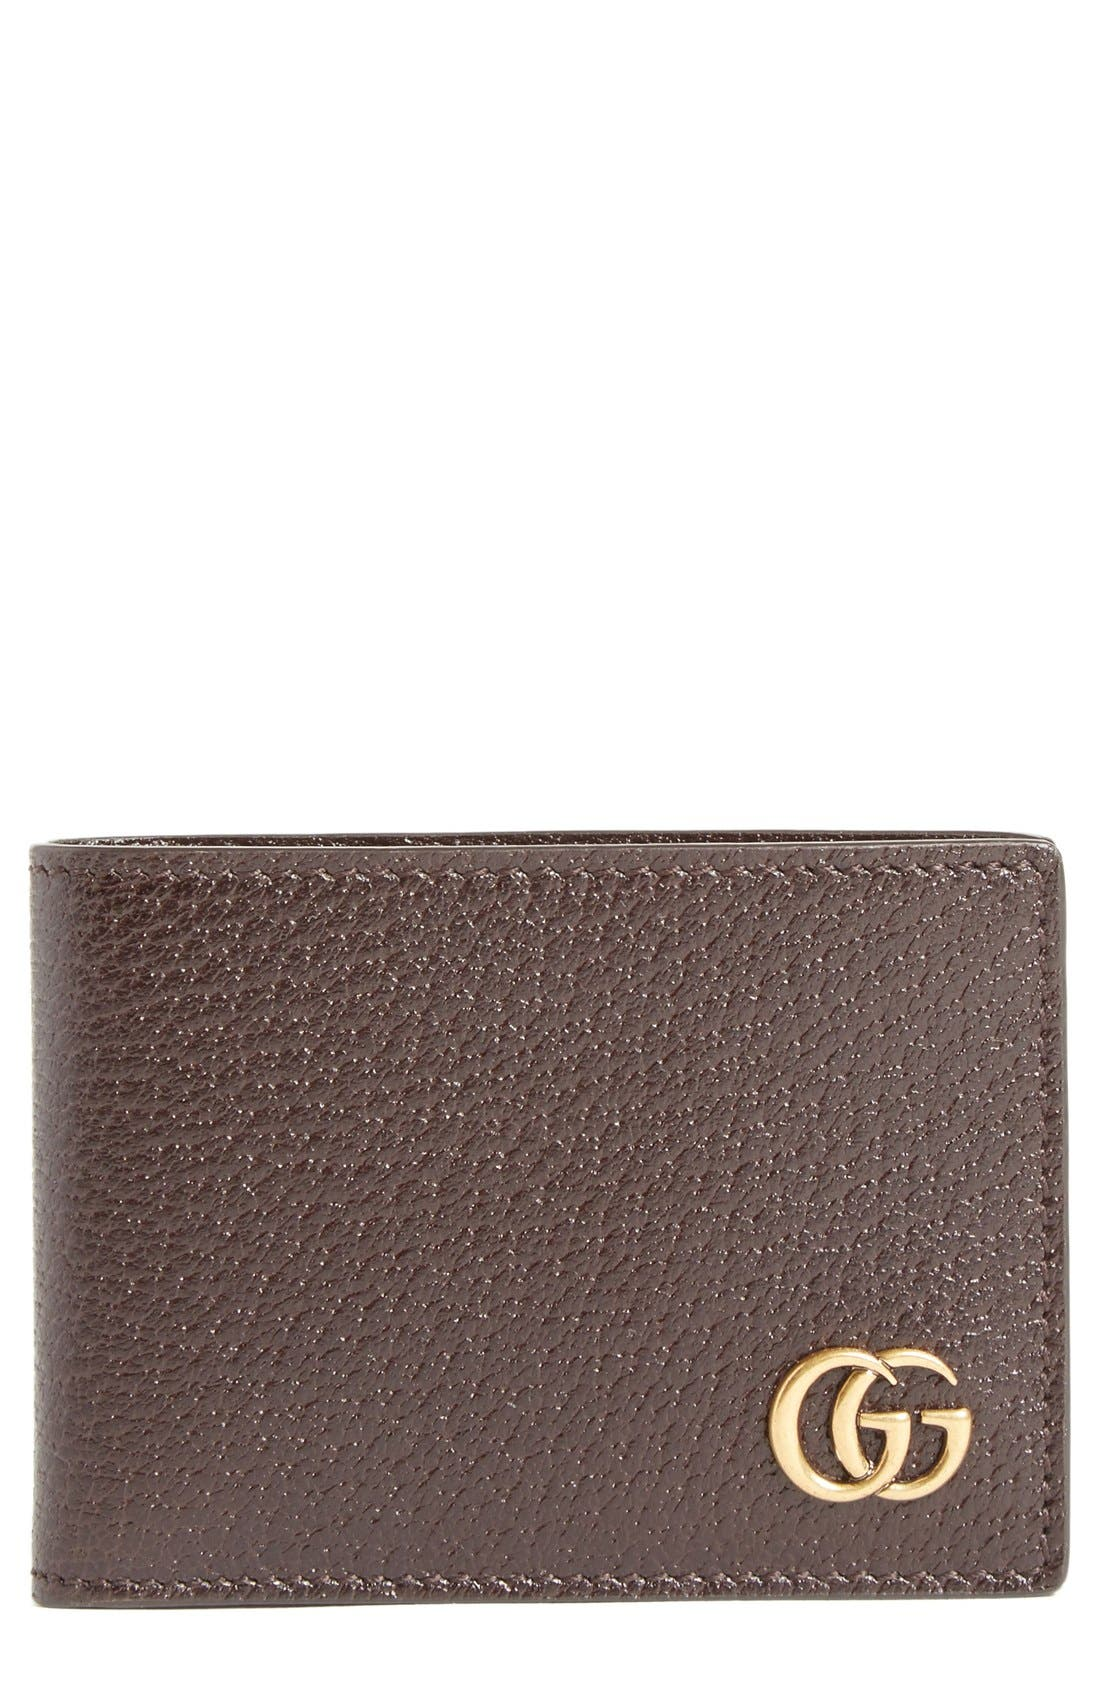 Marmont Leather Wallet,                             Main thumbnail 2, color,